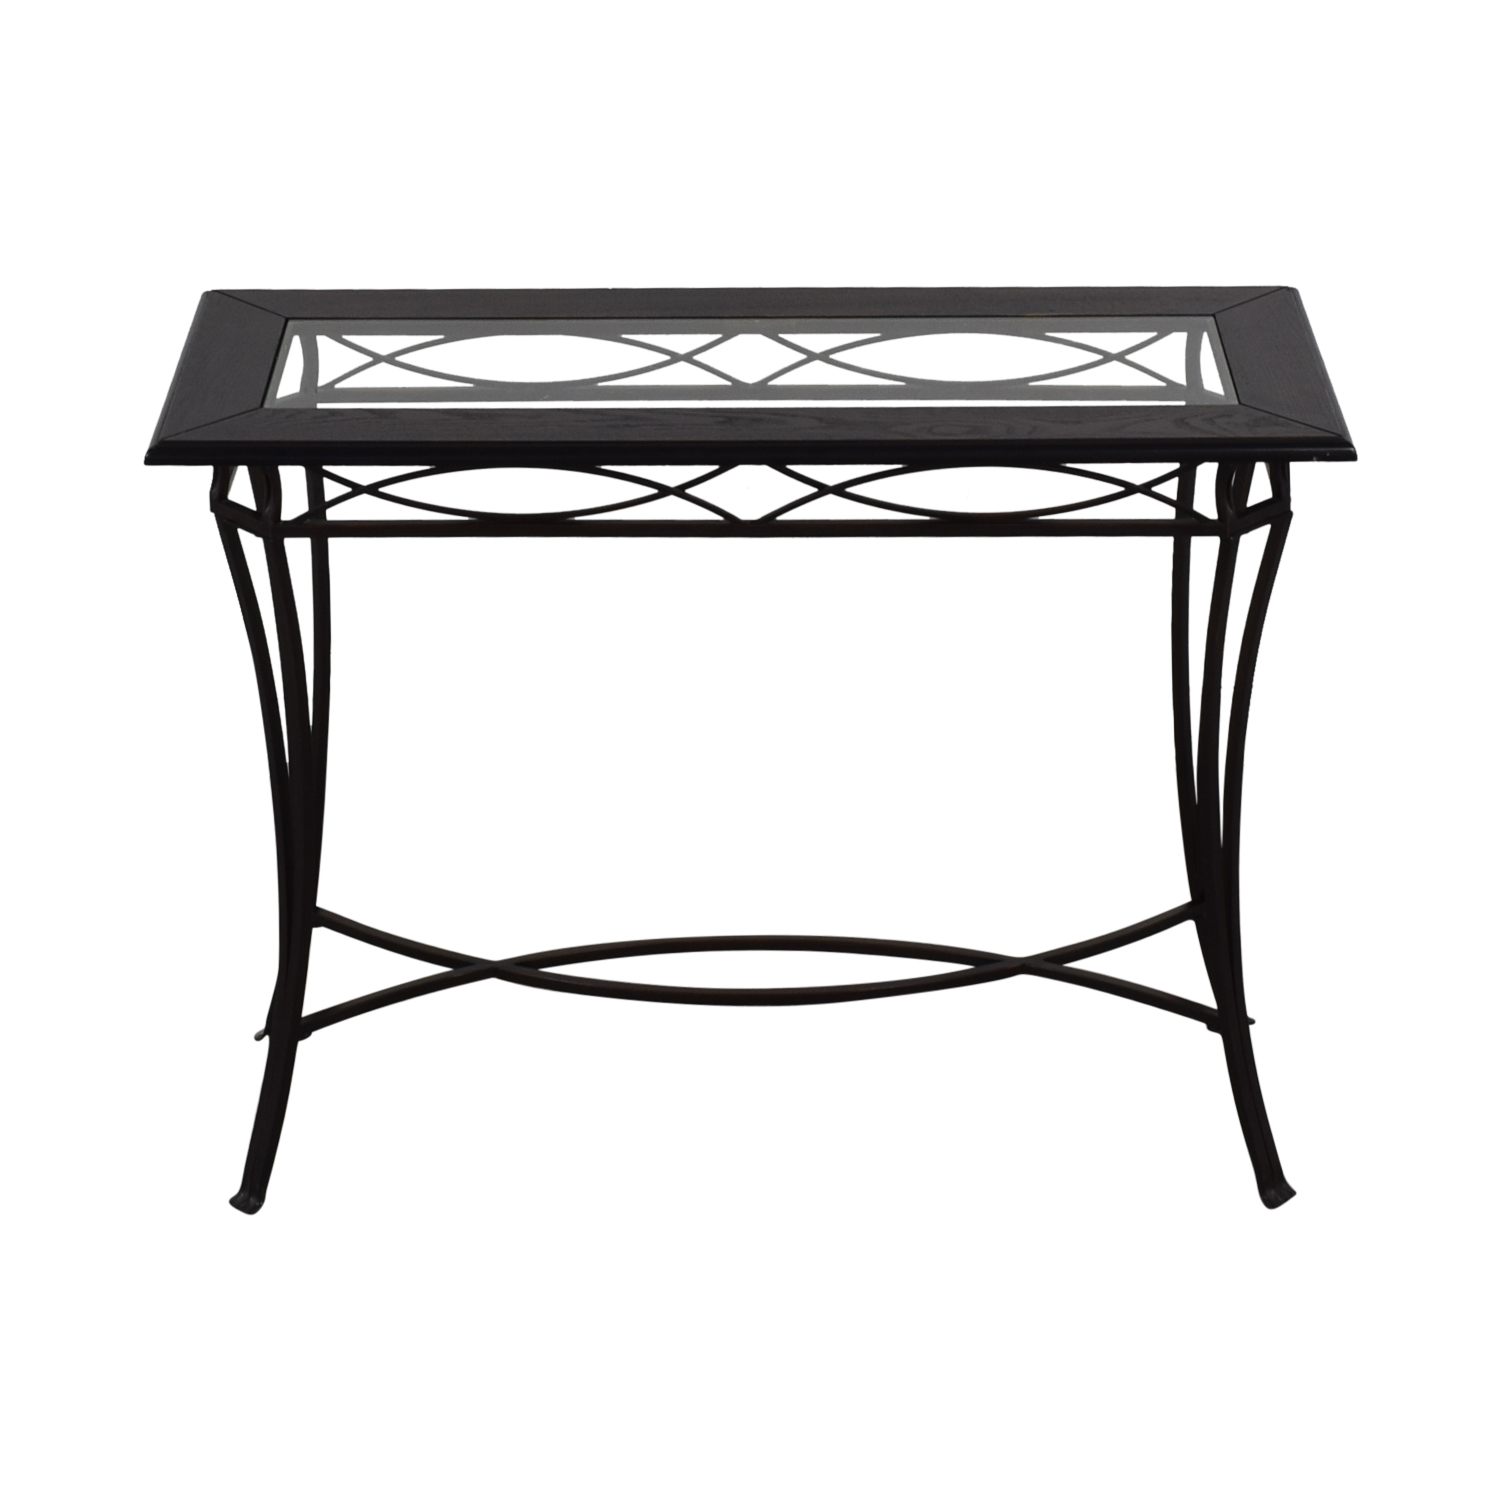 off target black metal and glass console table tables used end tall narrow coffee furniture san bernardino ashley kids distressed oak mainstays phone number royal head office